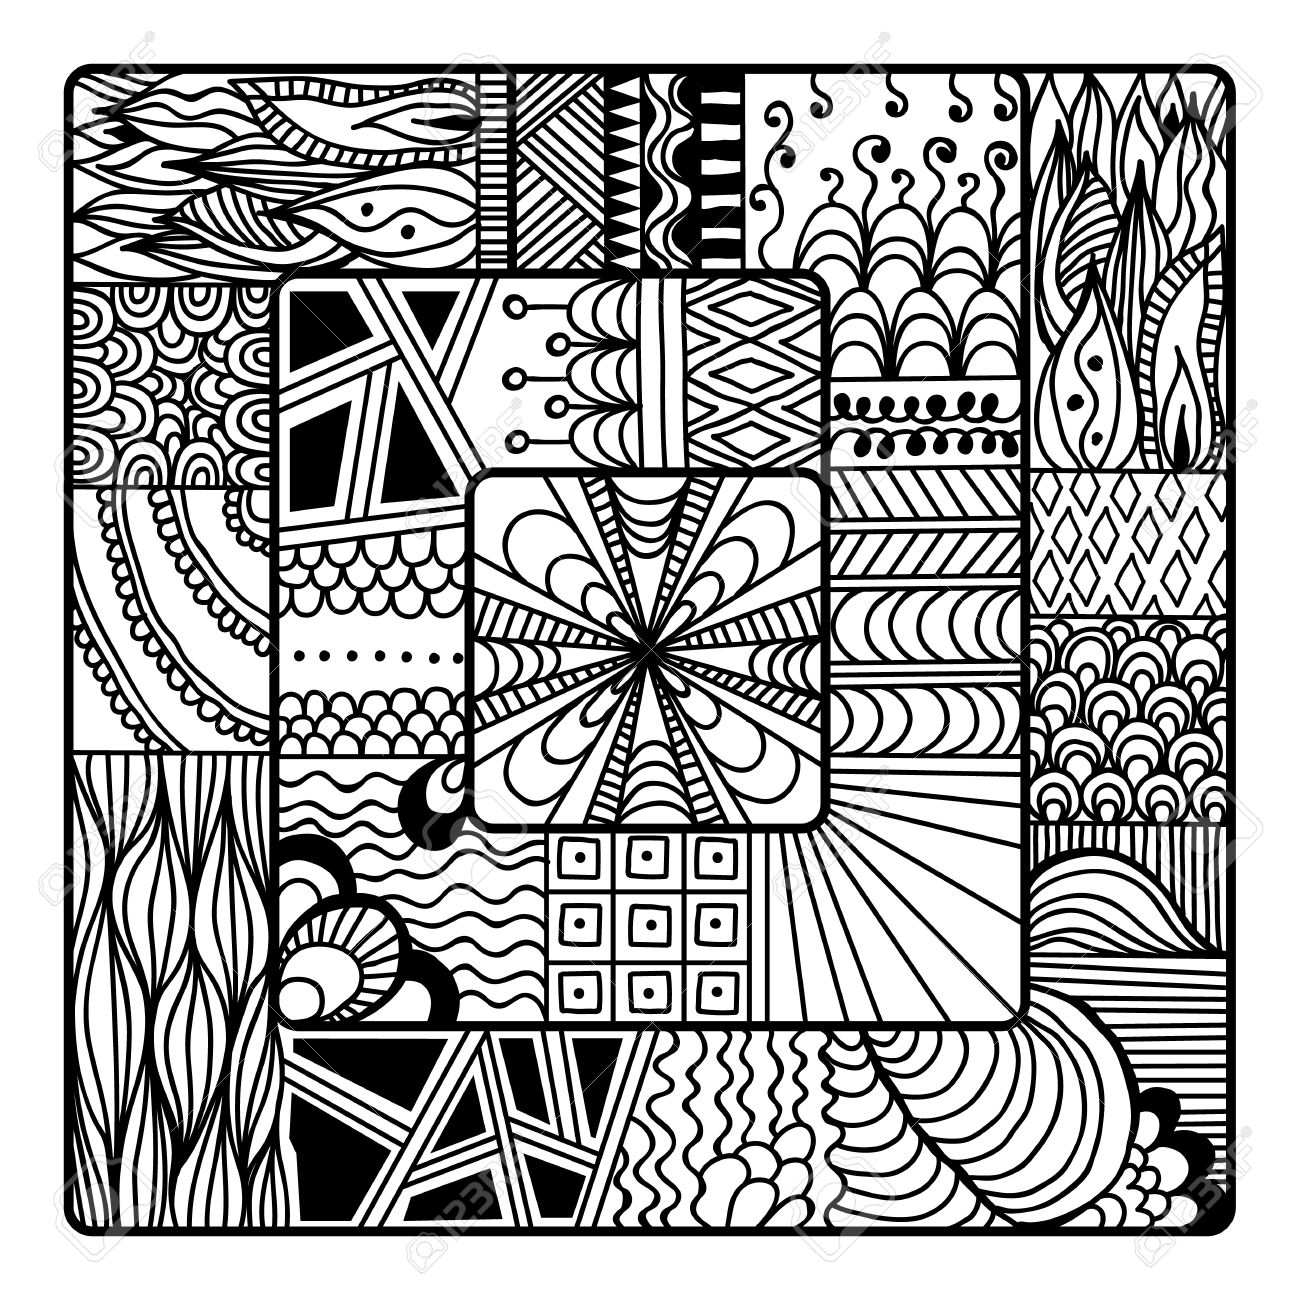 Square For Art Coloring Book Zendoodle Mandala Design Black